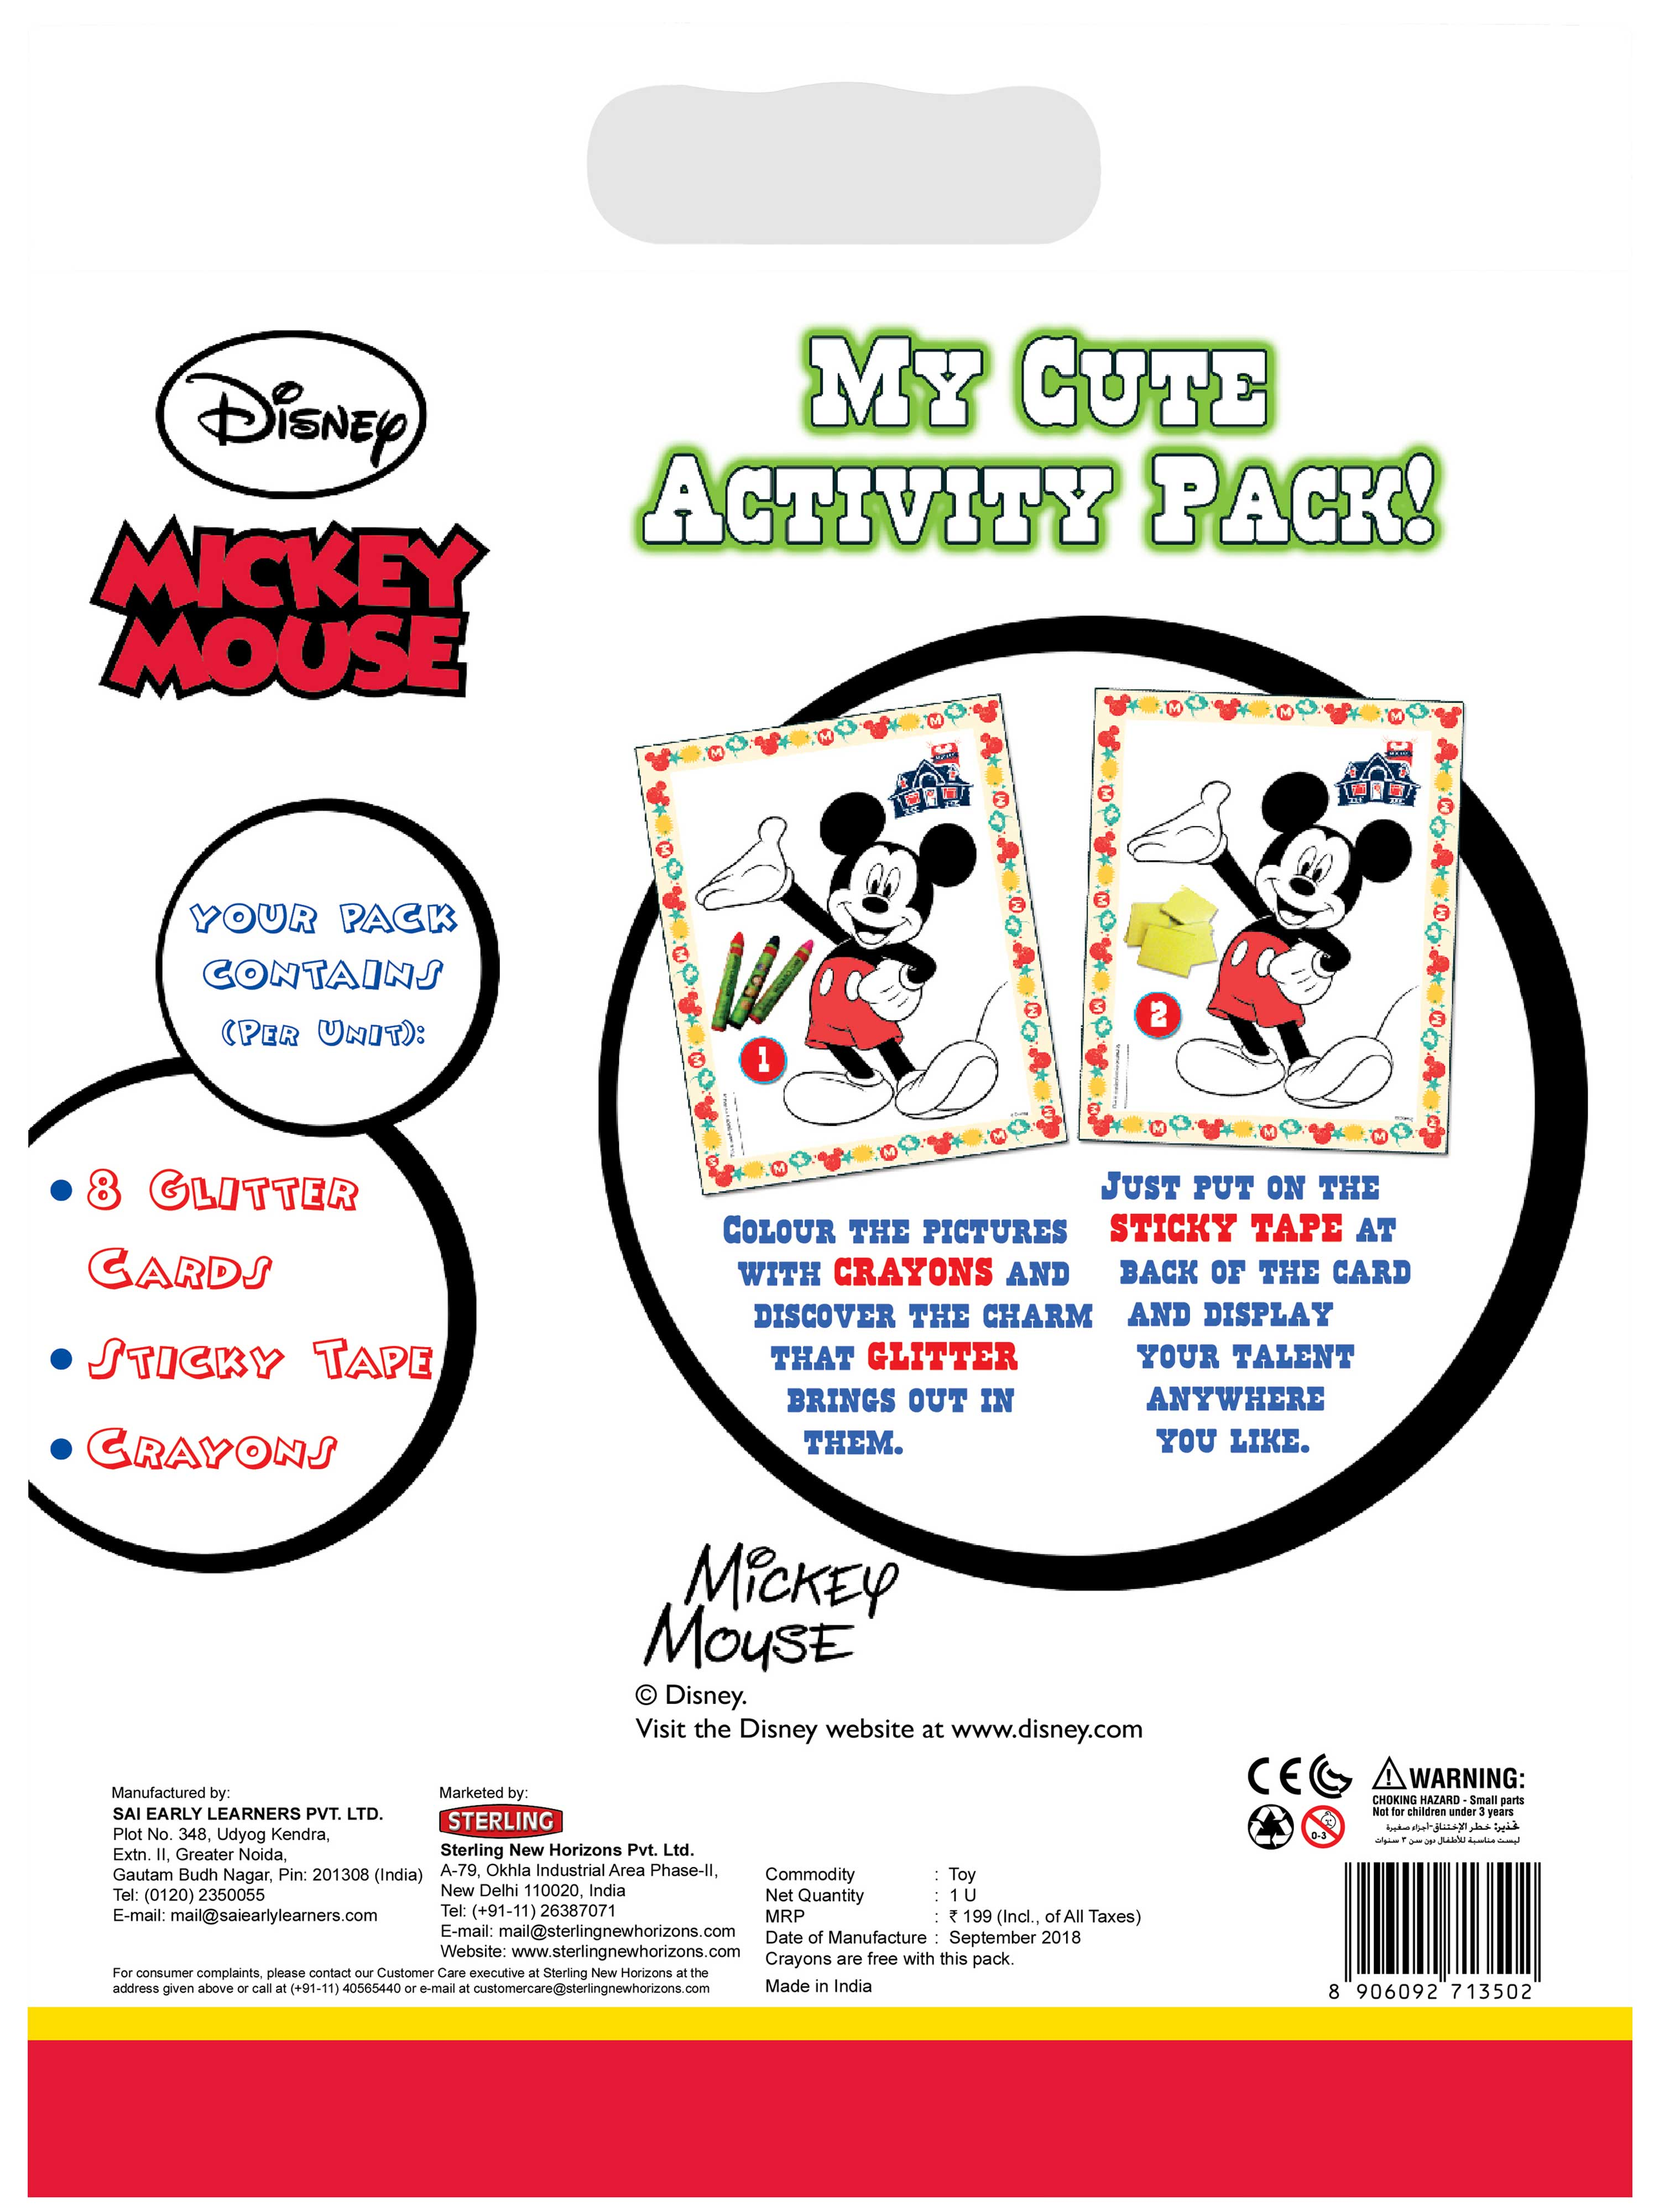 My Cute Activity Pack! Micky Mouse Glitter